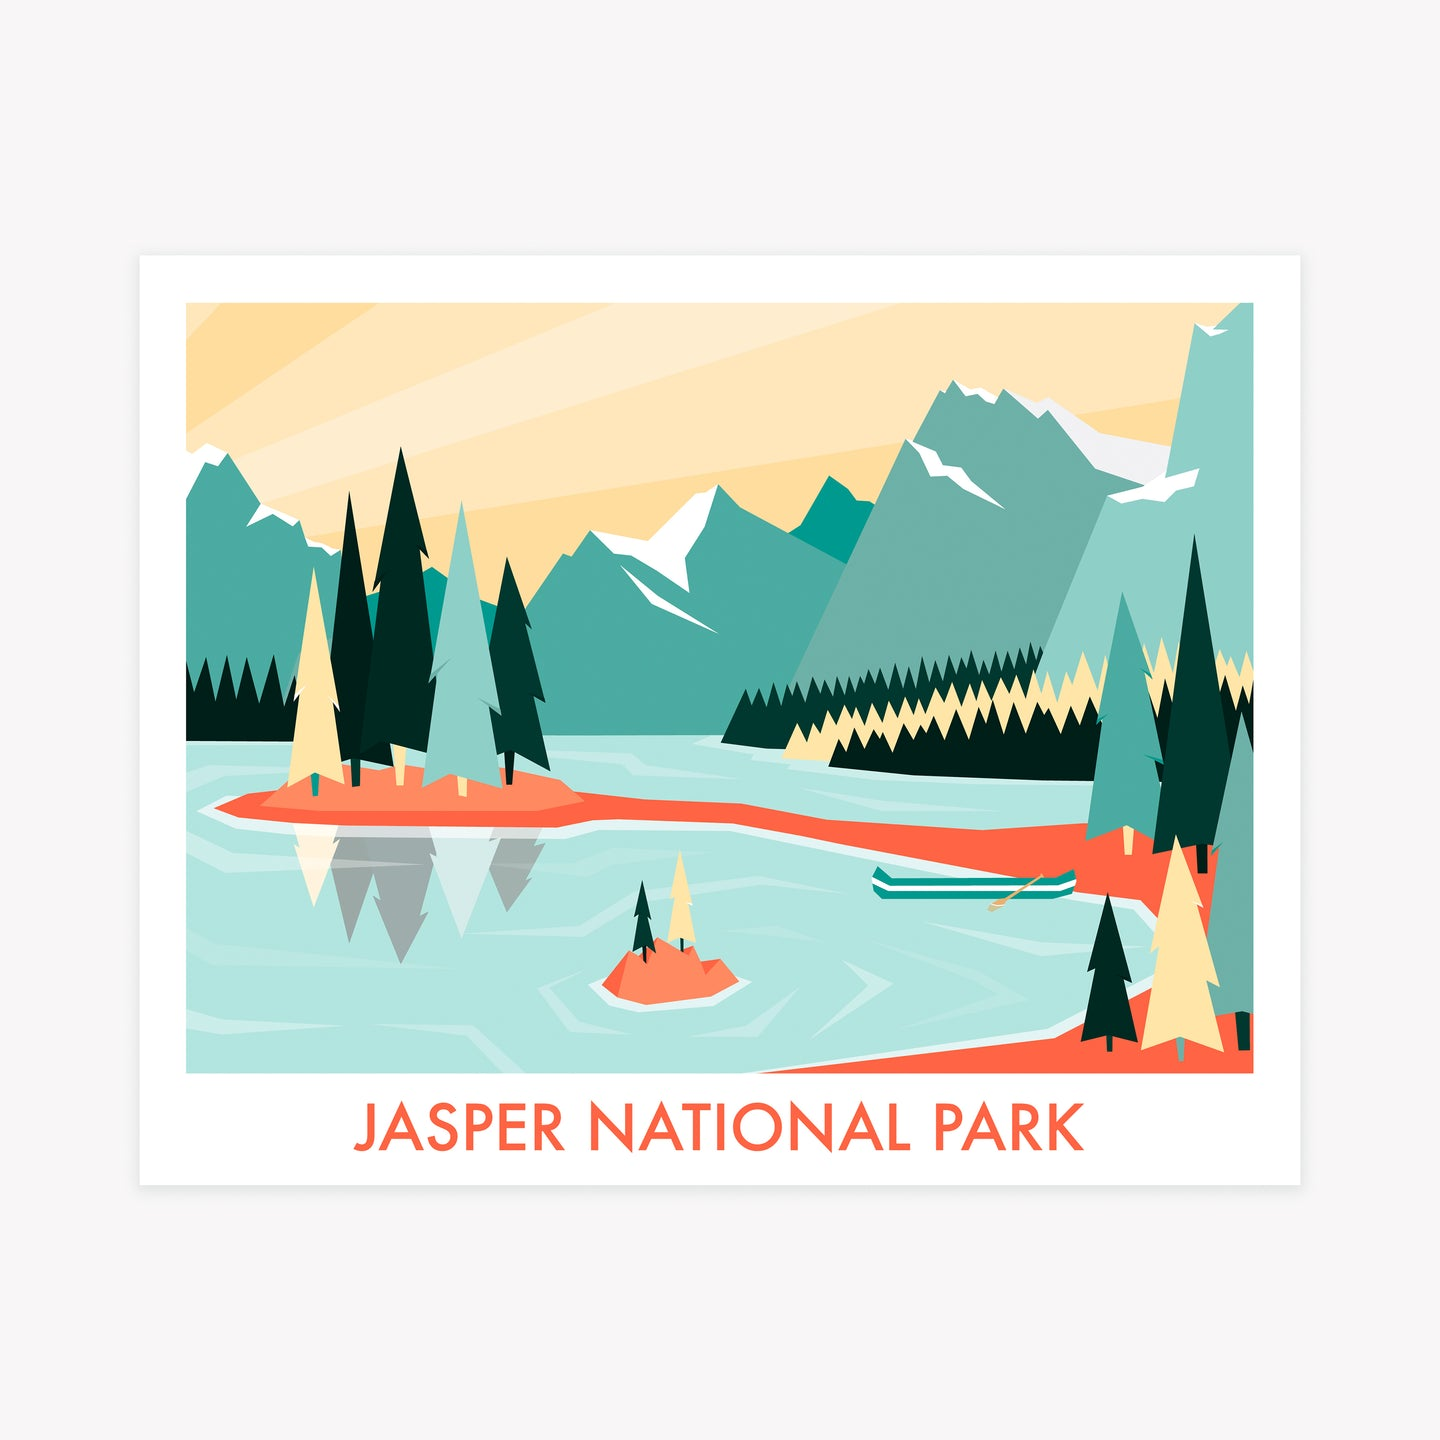 Jasper National Park - Imperfect Print